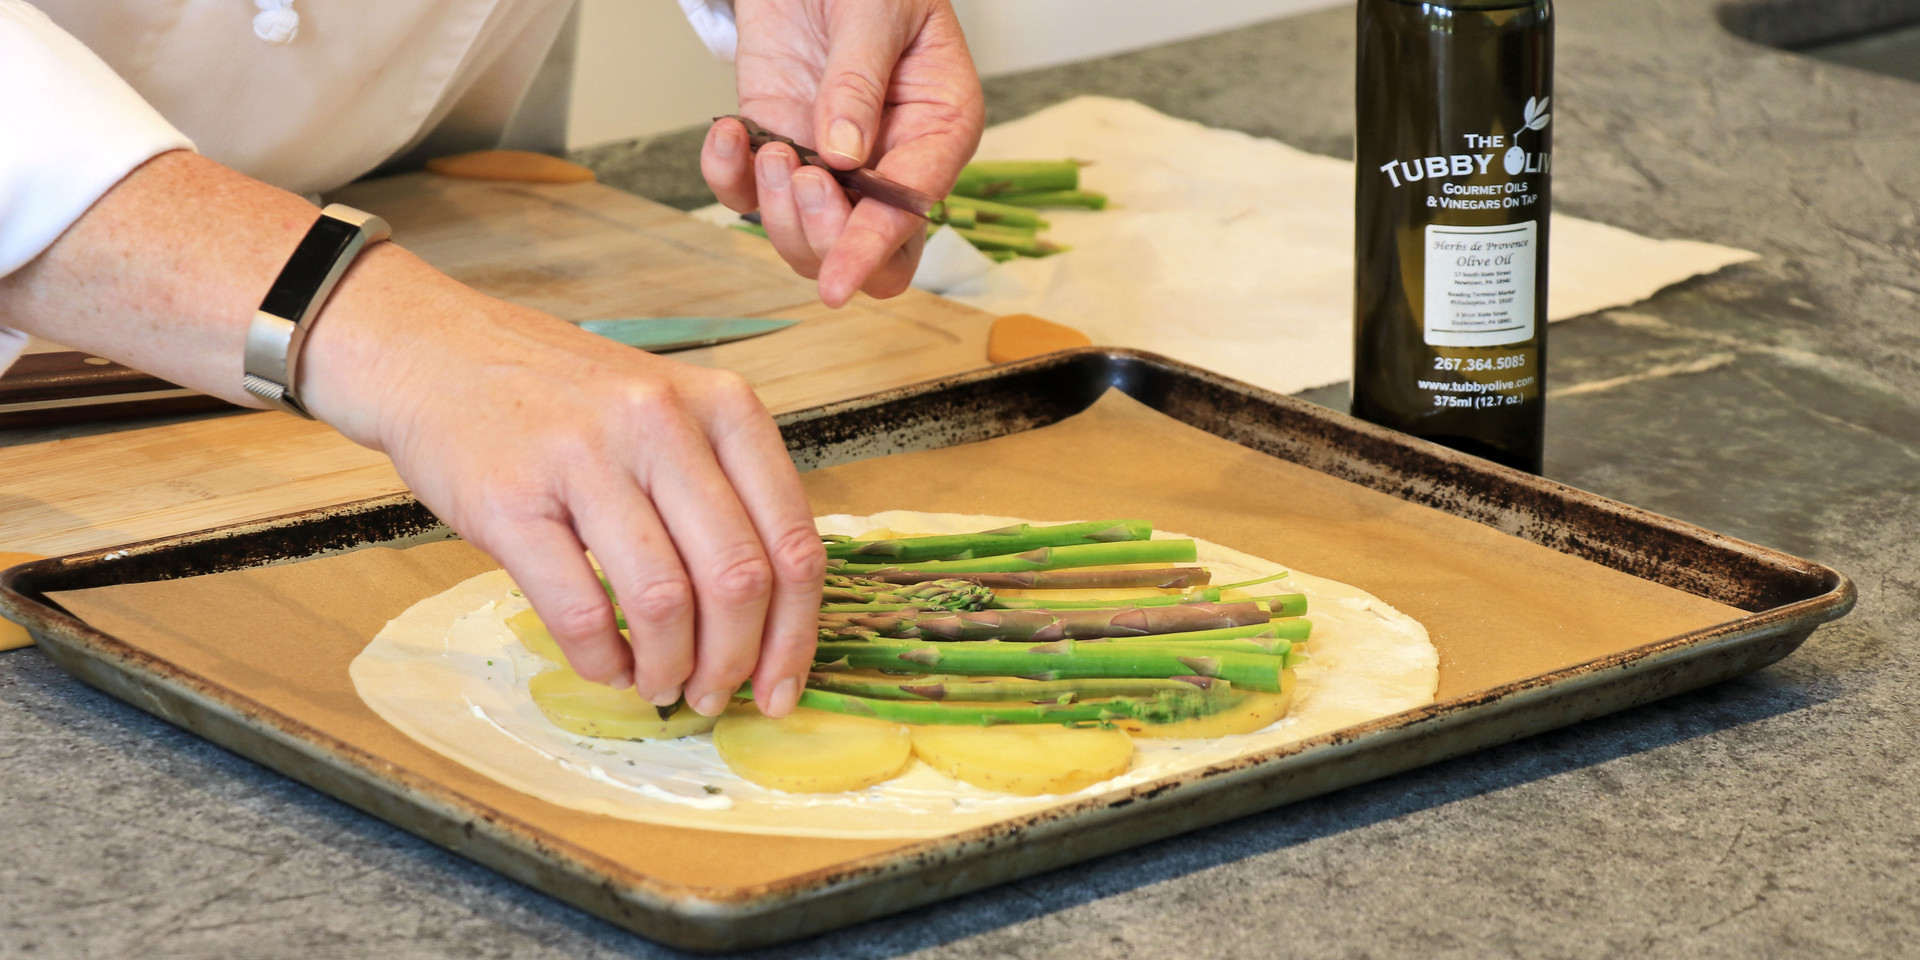 R&C galette assembly Tubby Olive promo 2 .jpg